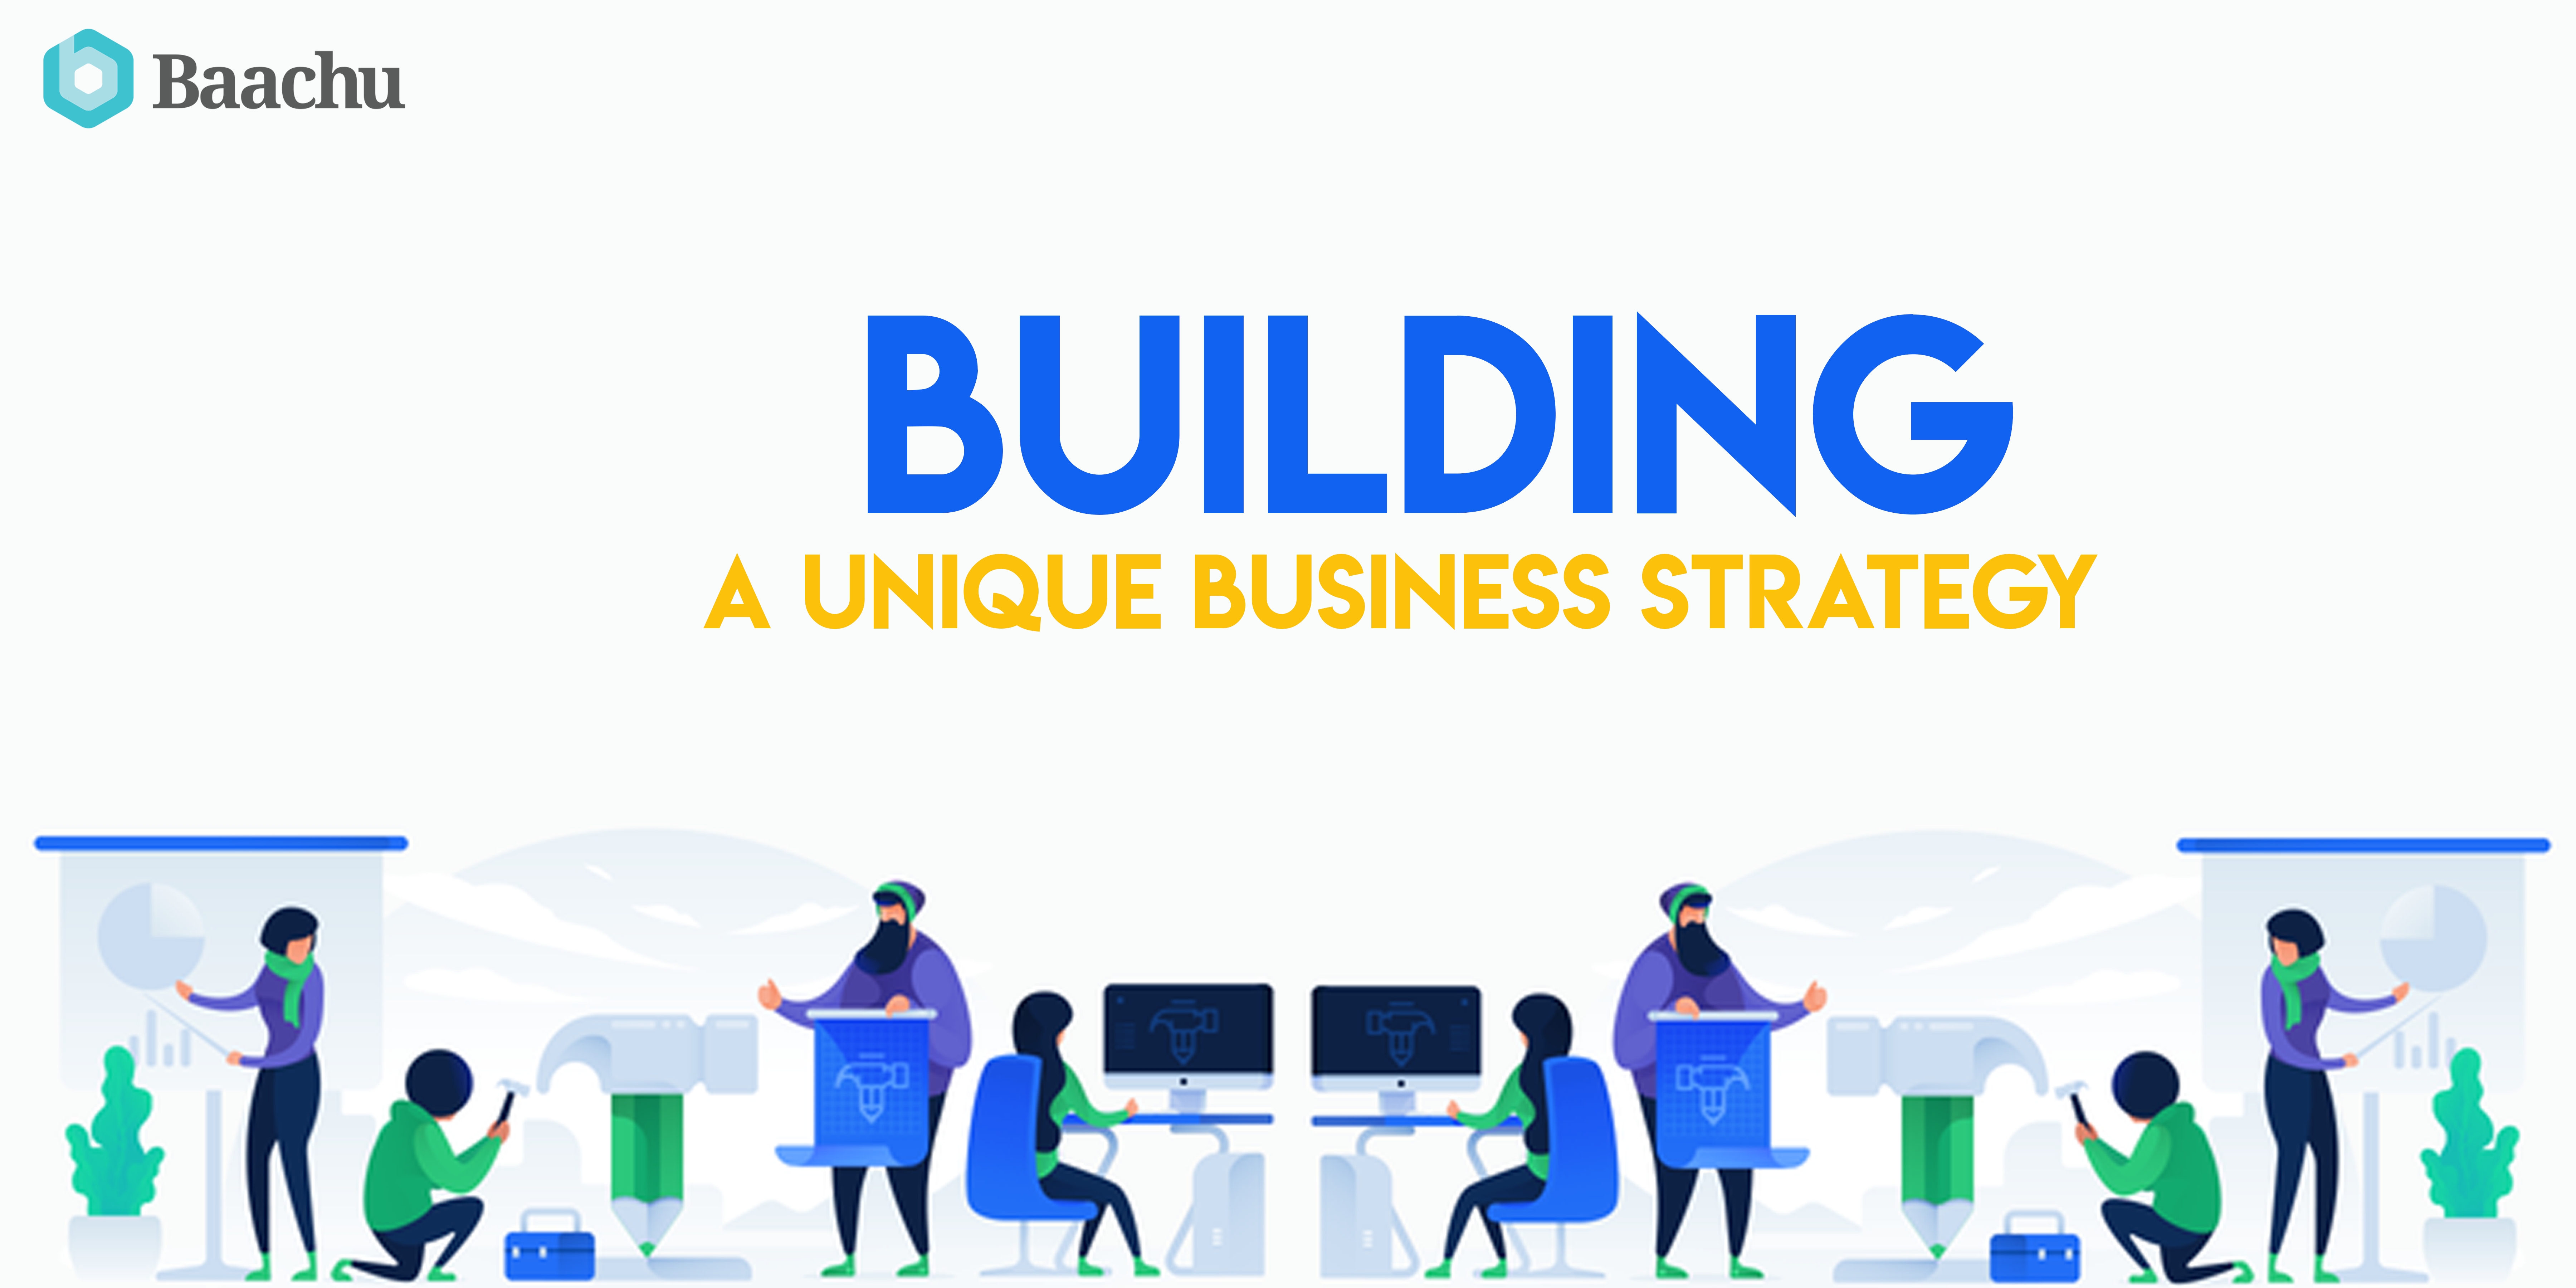 Top 4 Business Strategies to become market leaders